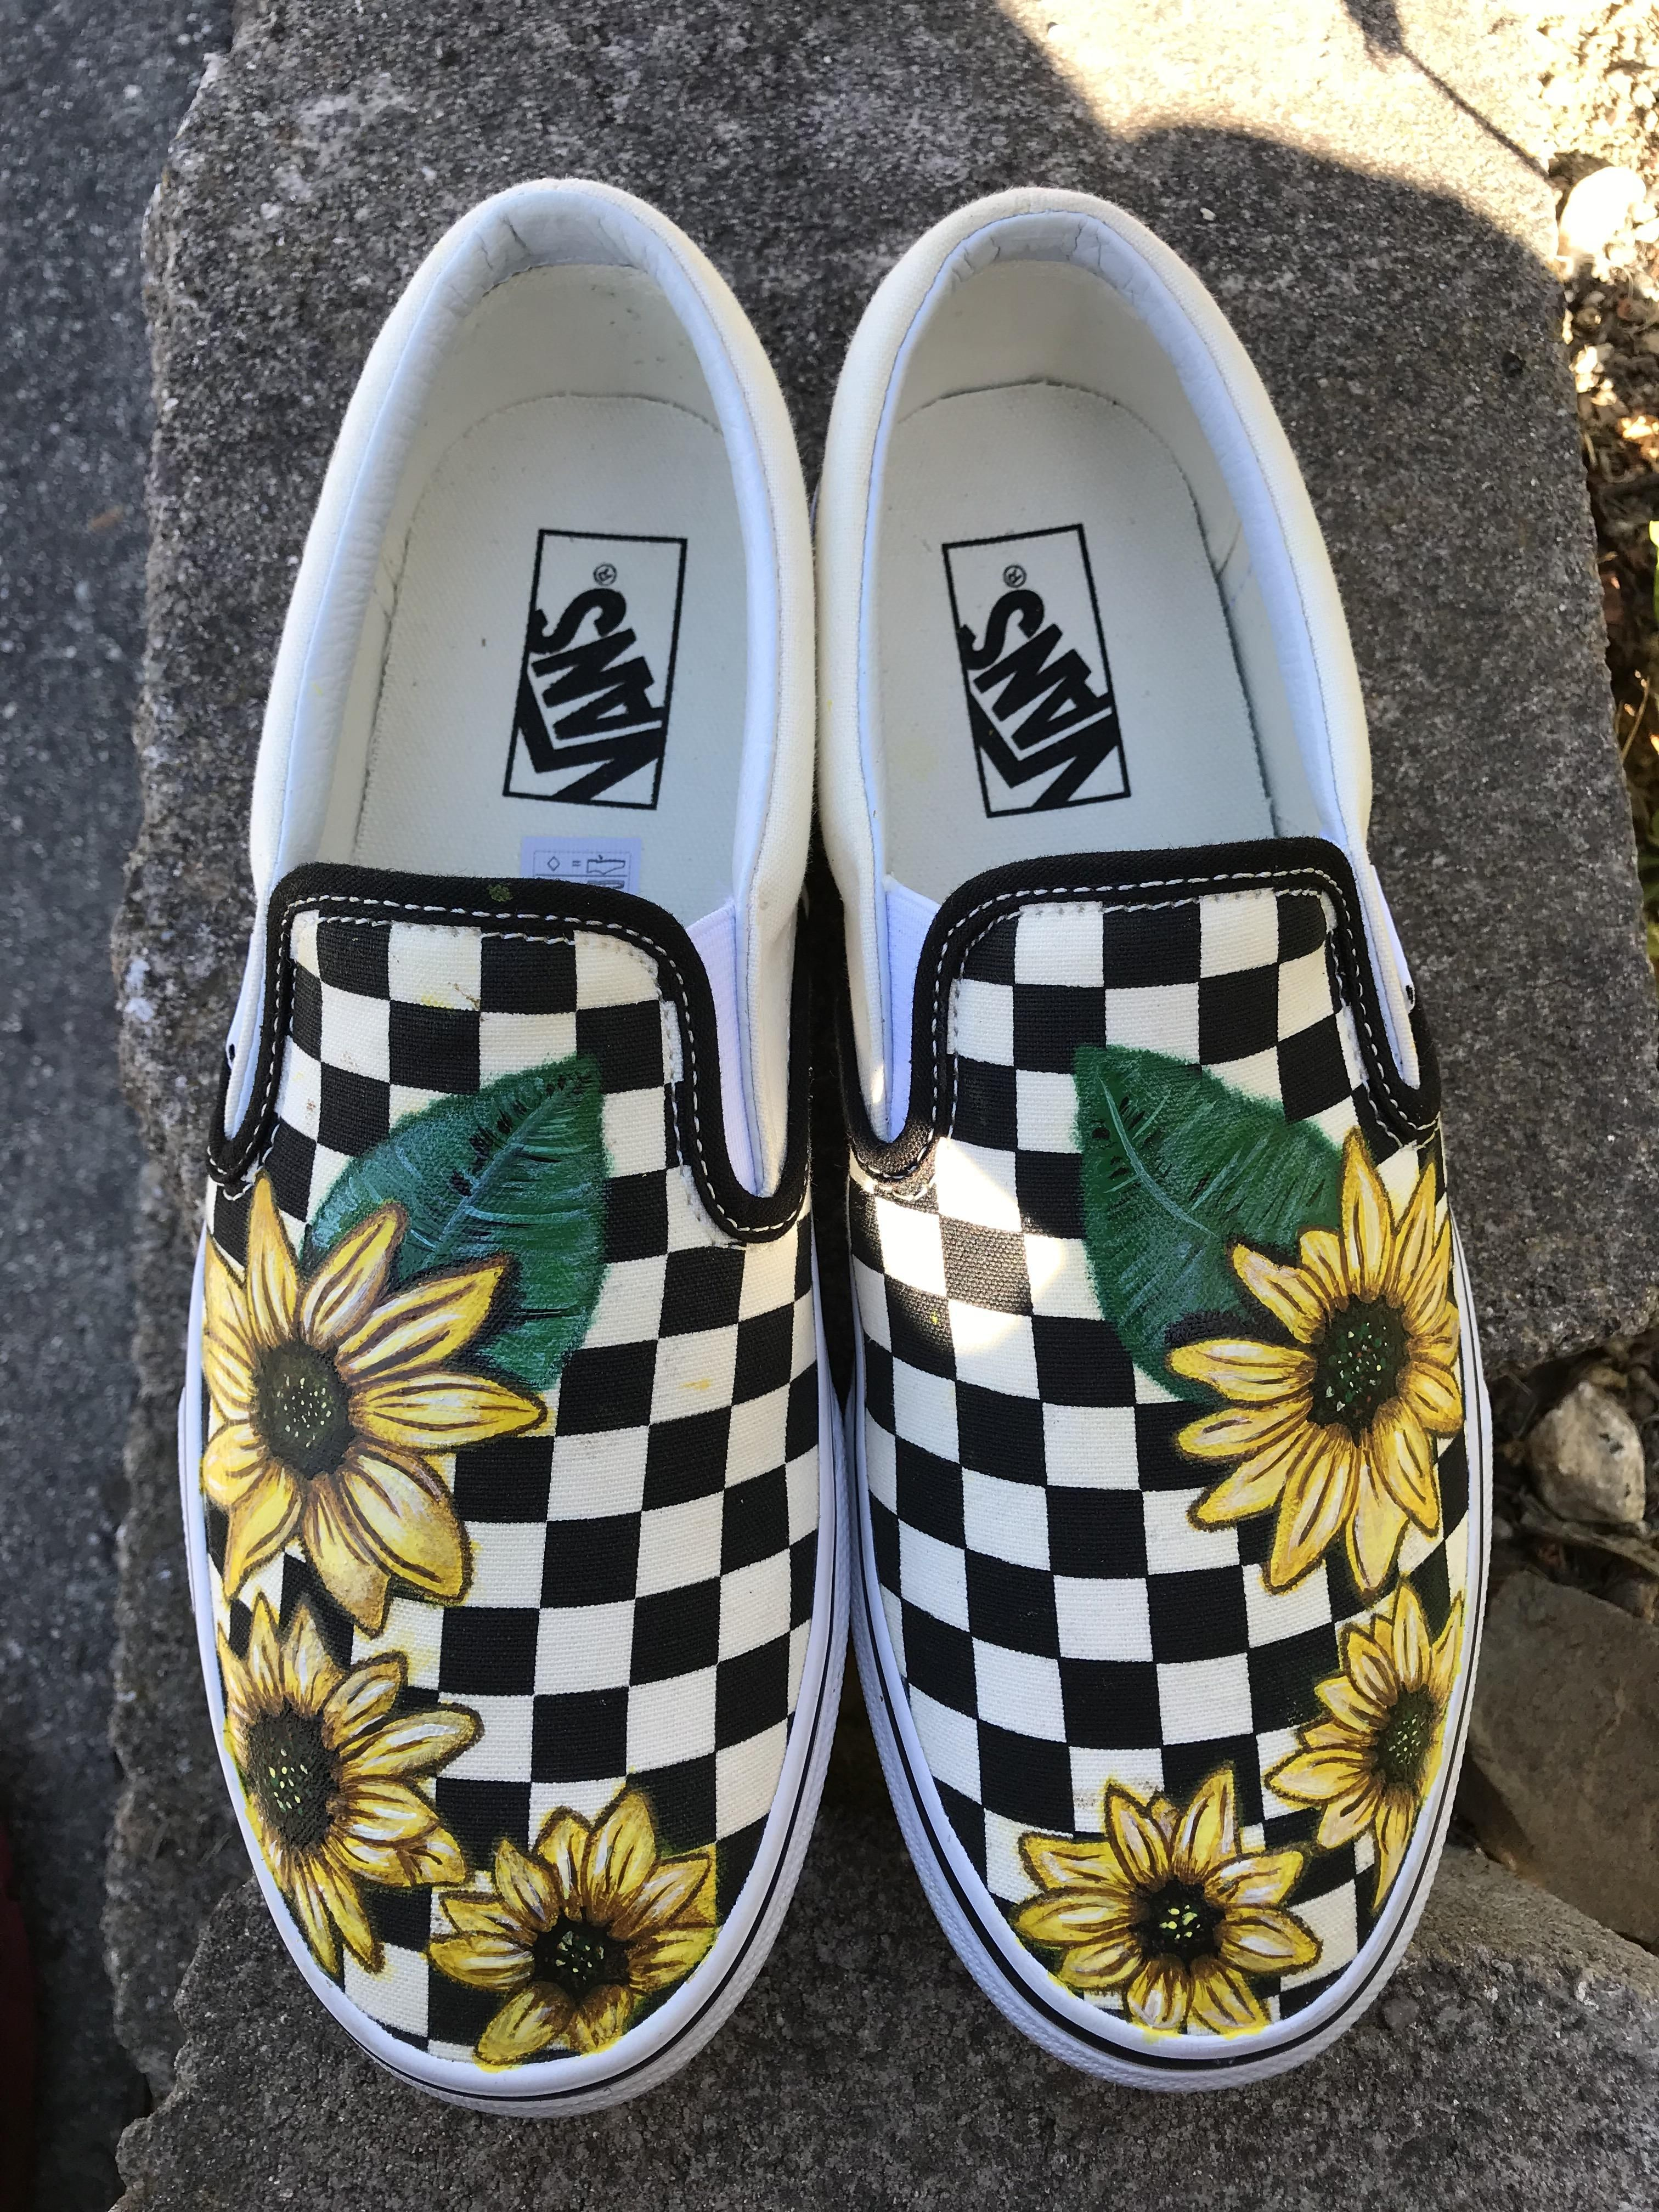 Checkered Vans I hand painted for a friend )